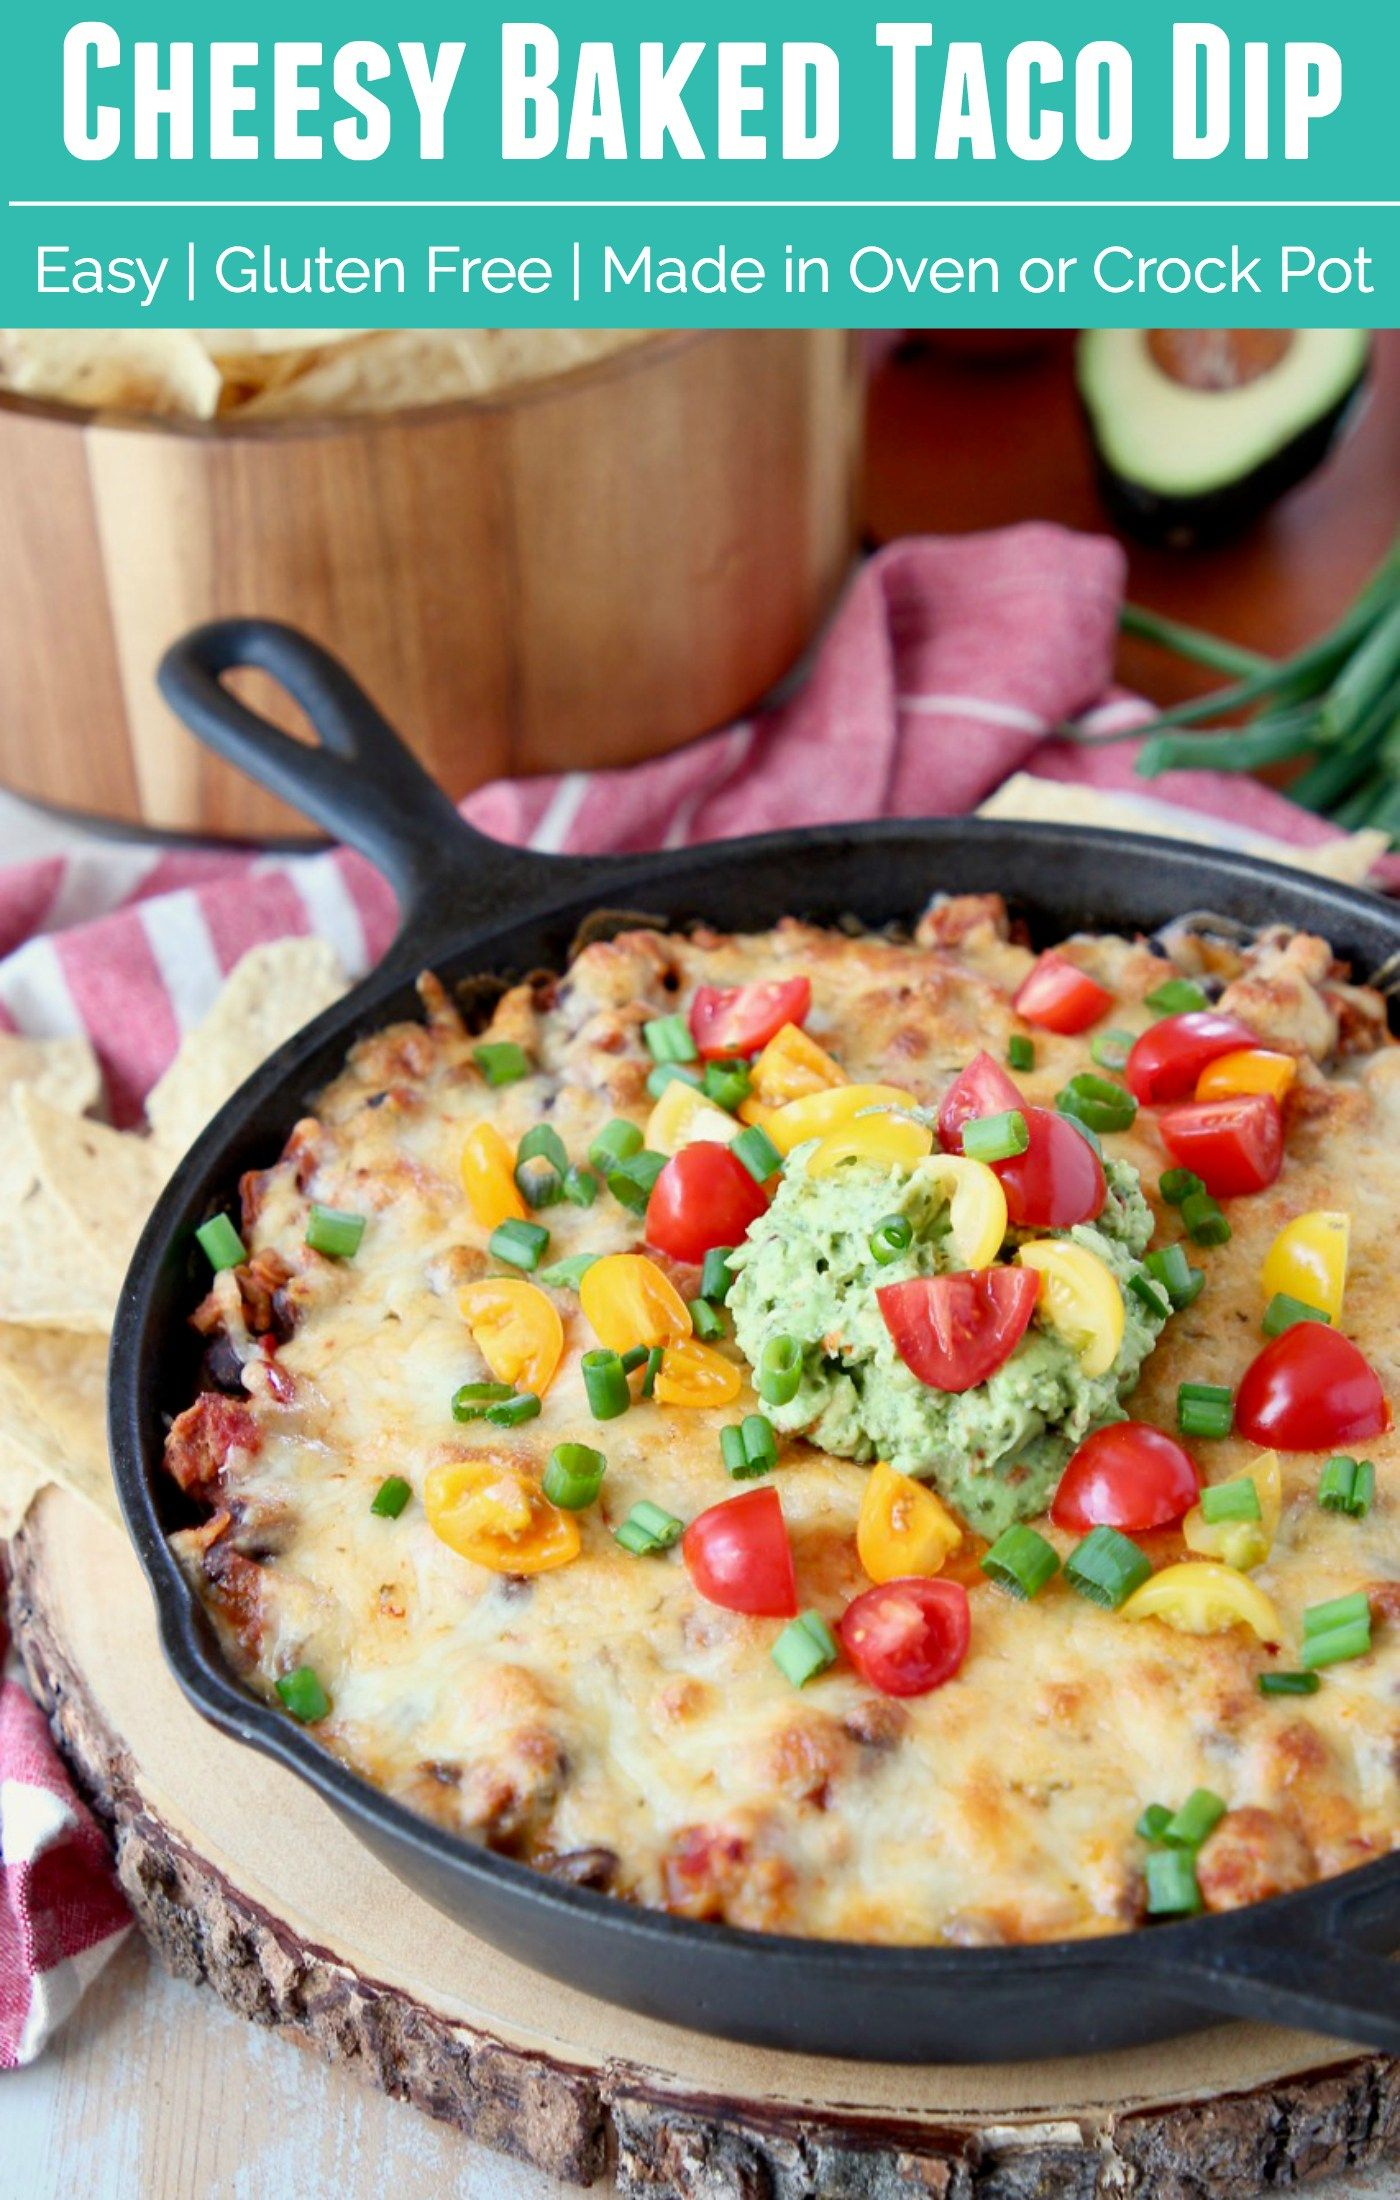 The Ultimate Cheesy Baked Taco Dip Is An Easy Appetizer Made With Layers Of Cream Cheese Taco Seasone Easy Appetizer Recipes Appetizers Easy Appetizer Recipes